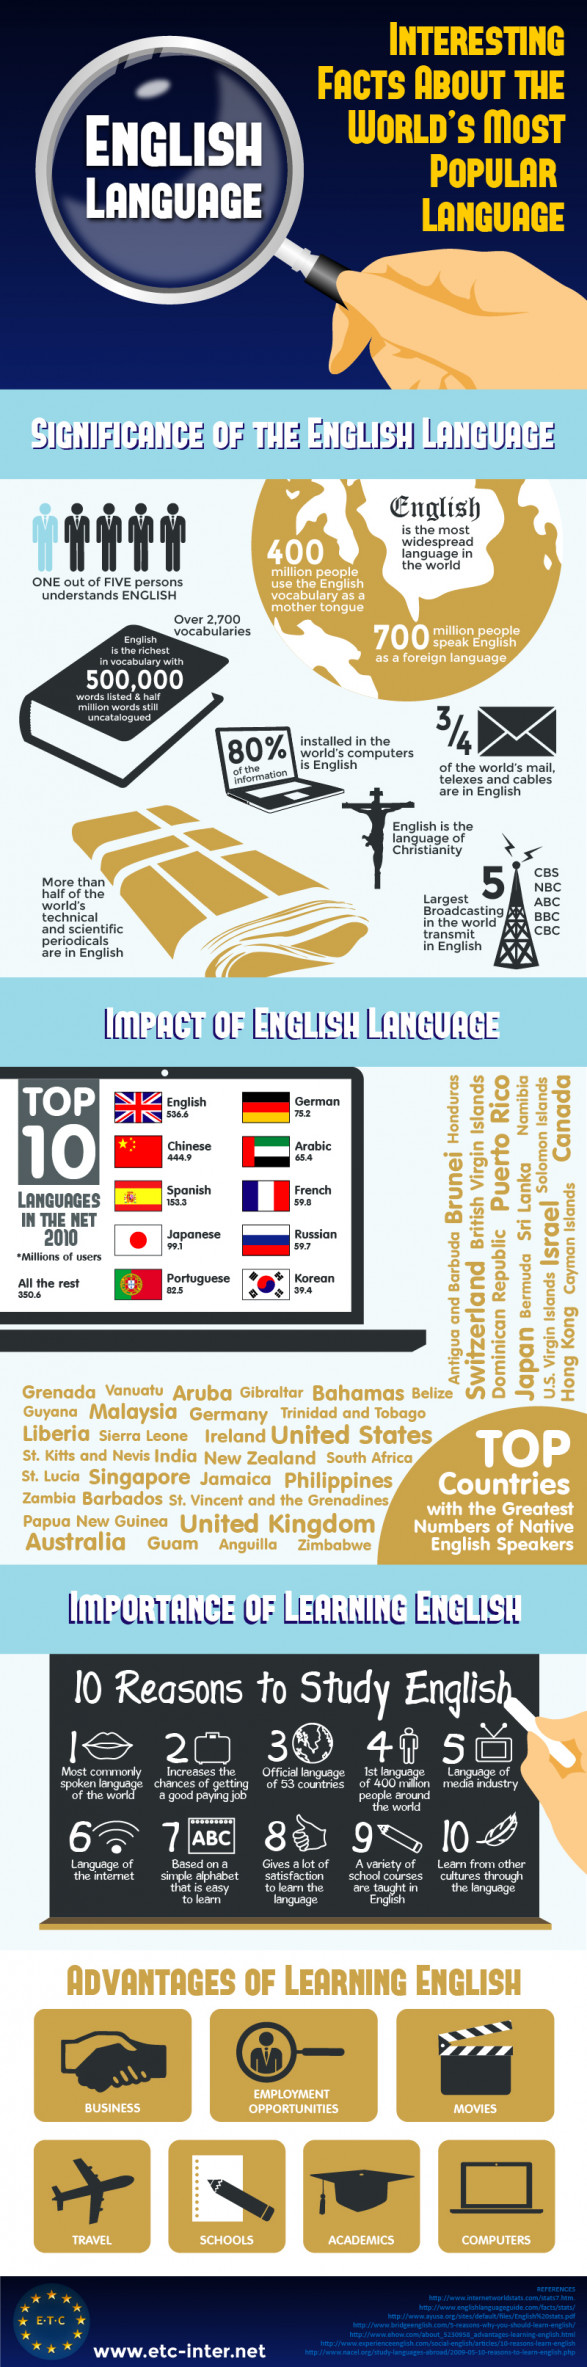 English Language - Interesting Facts about the Worldâs Most Popular Language